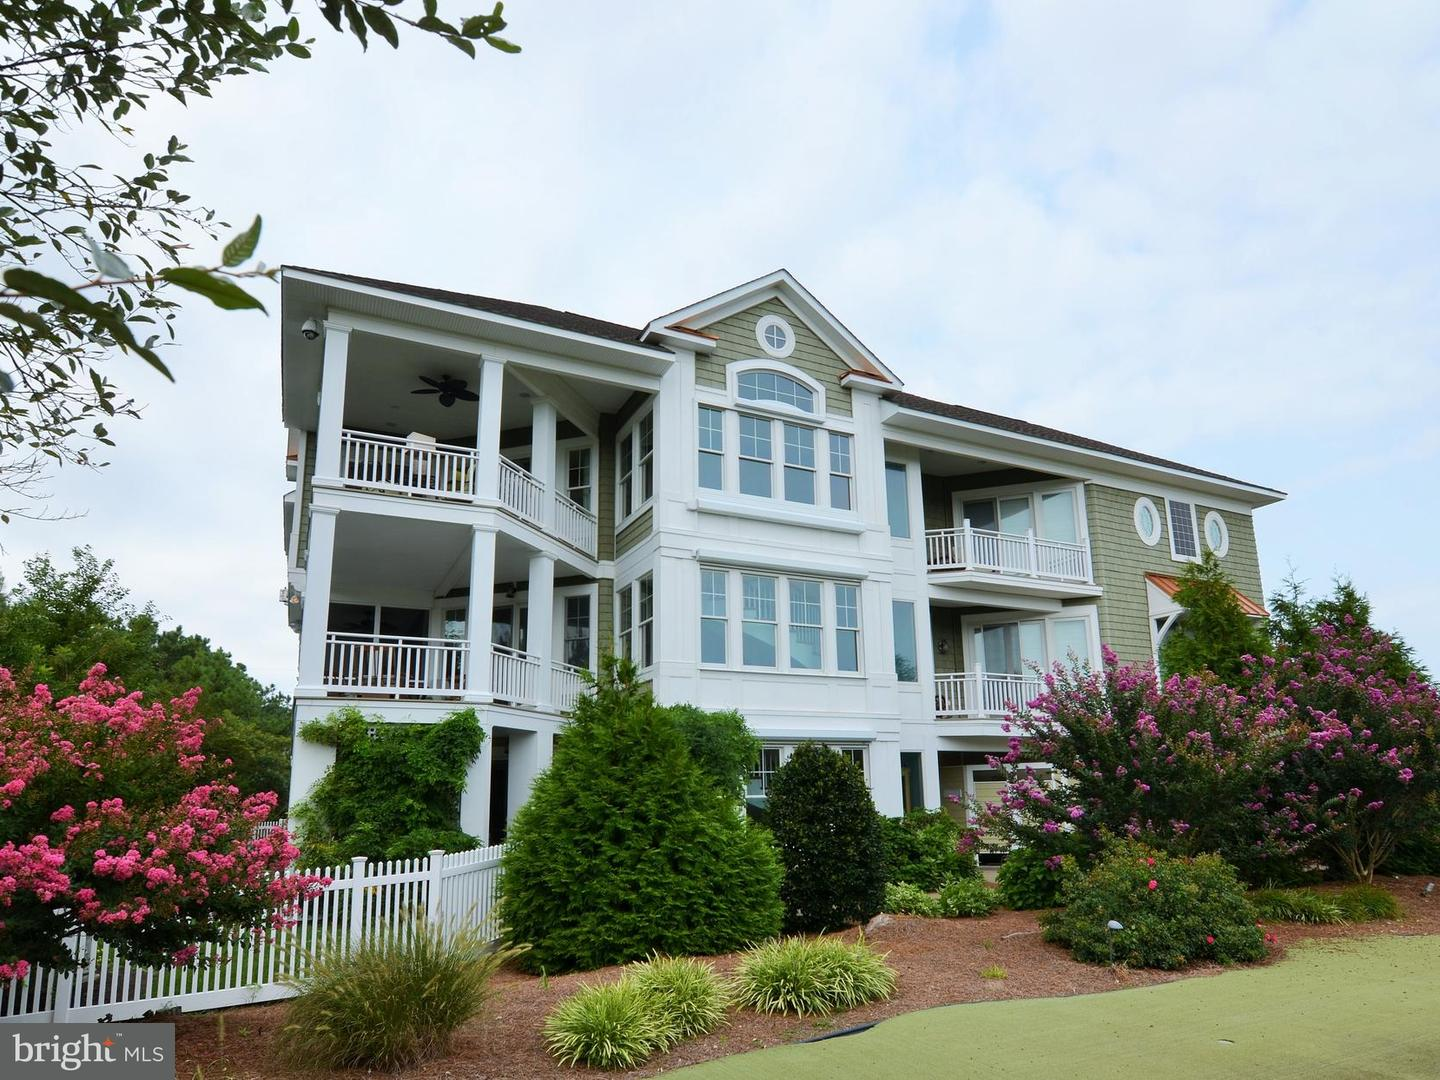 1002293530-300500805586-2018-09-25-15-08-24 31 Hall Ave | Rehoboth Beach, De Real Estate For Sale | MLS# 1002293530  - Suzanne Macnab